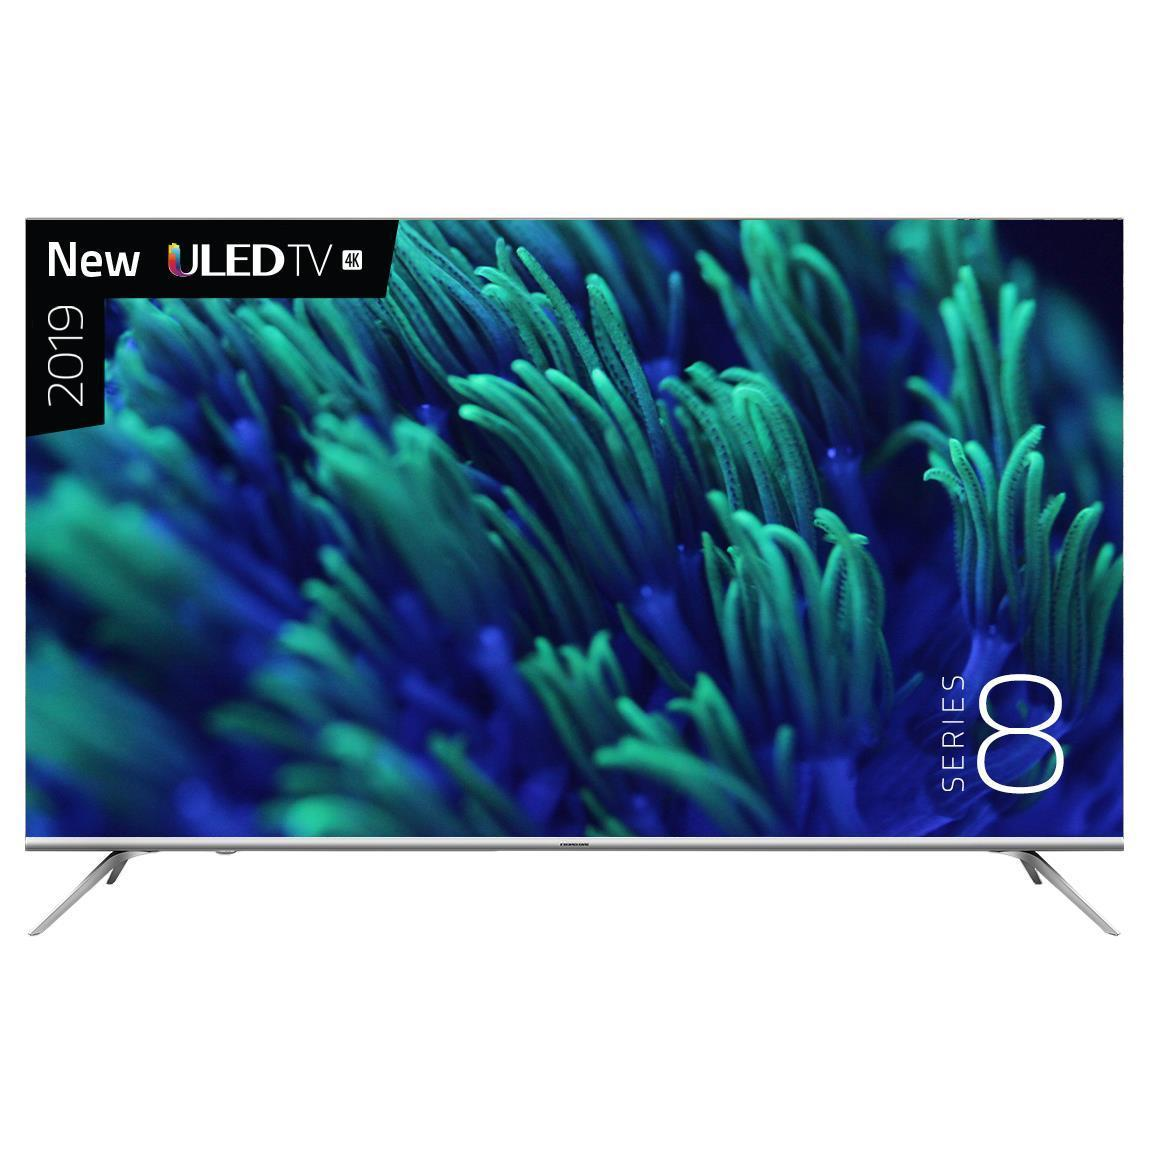 Hisense 65R8 Series 8 65″ 4K UHD Smart LED TV